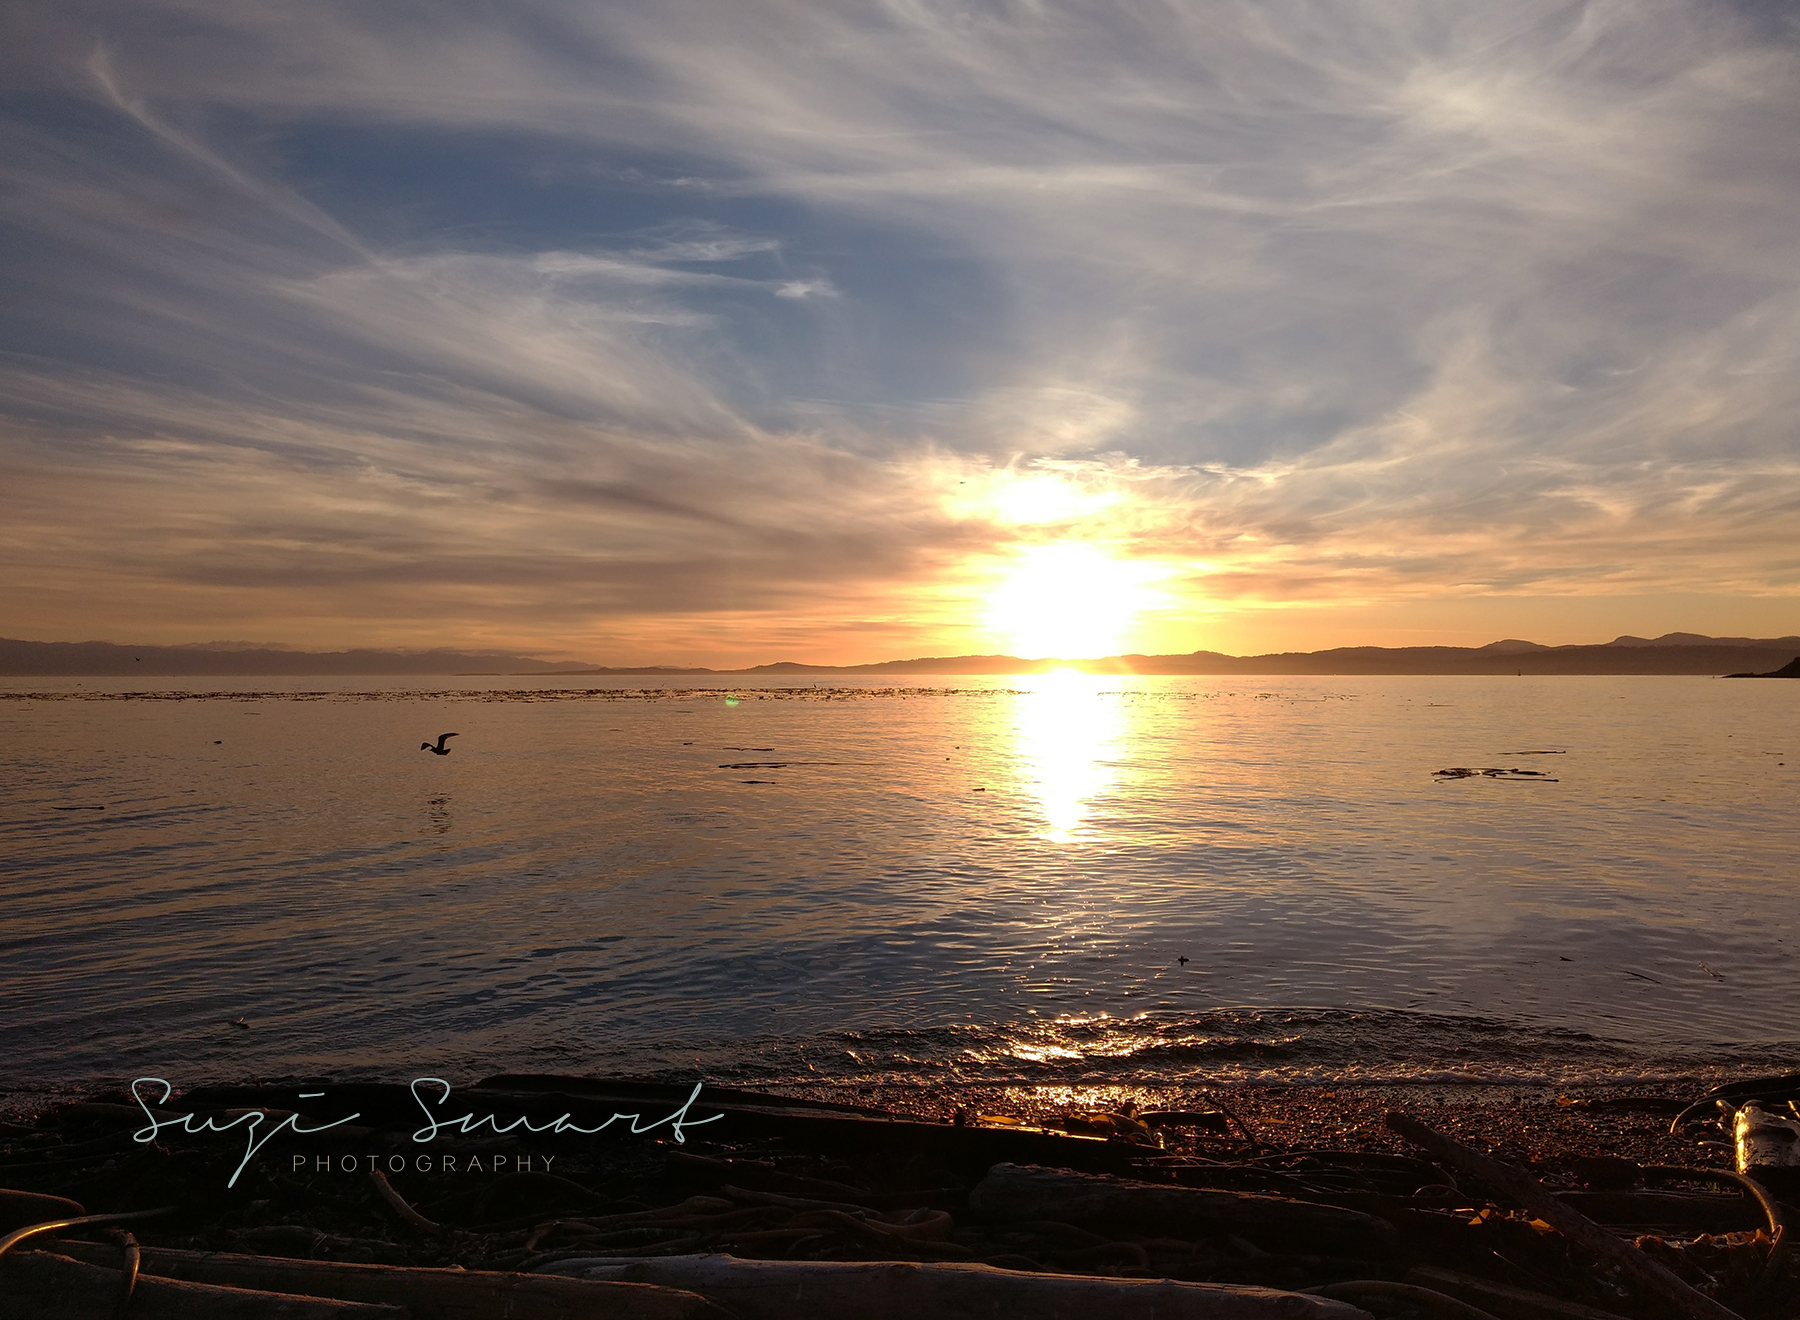 Sunset at Clover Point, Victoria, BC